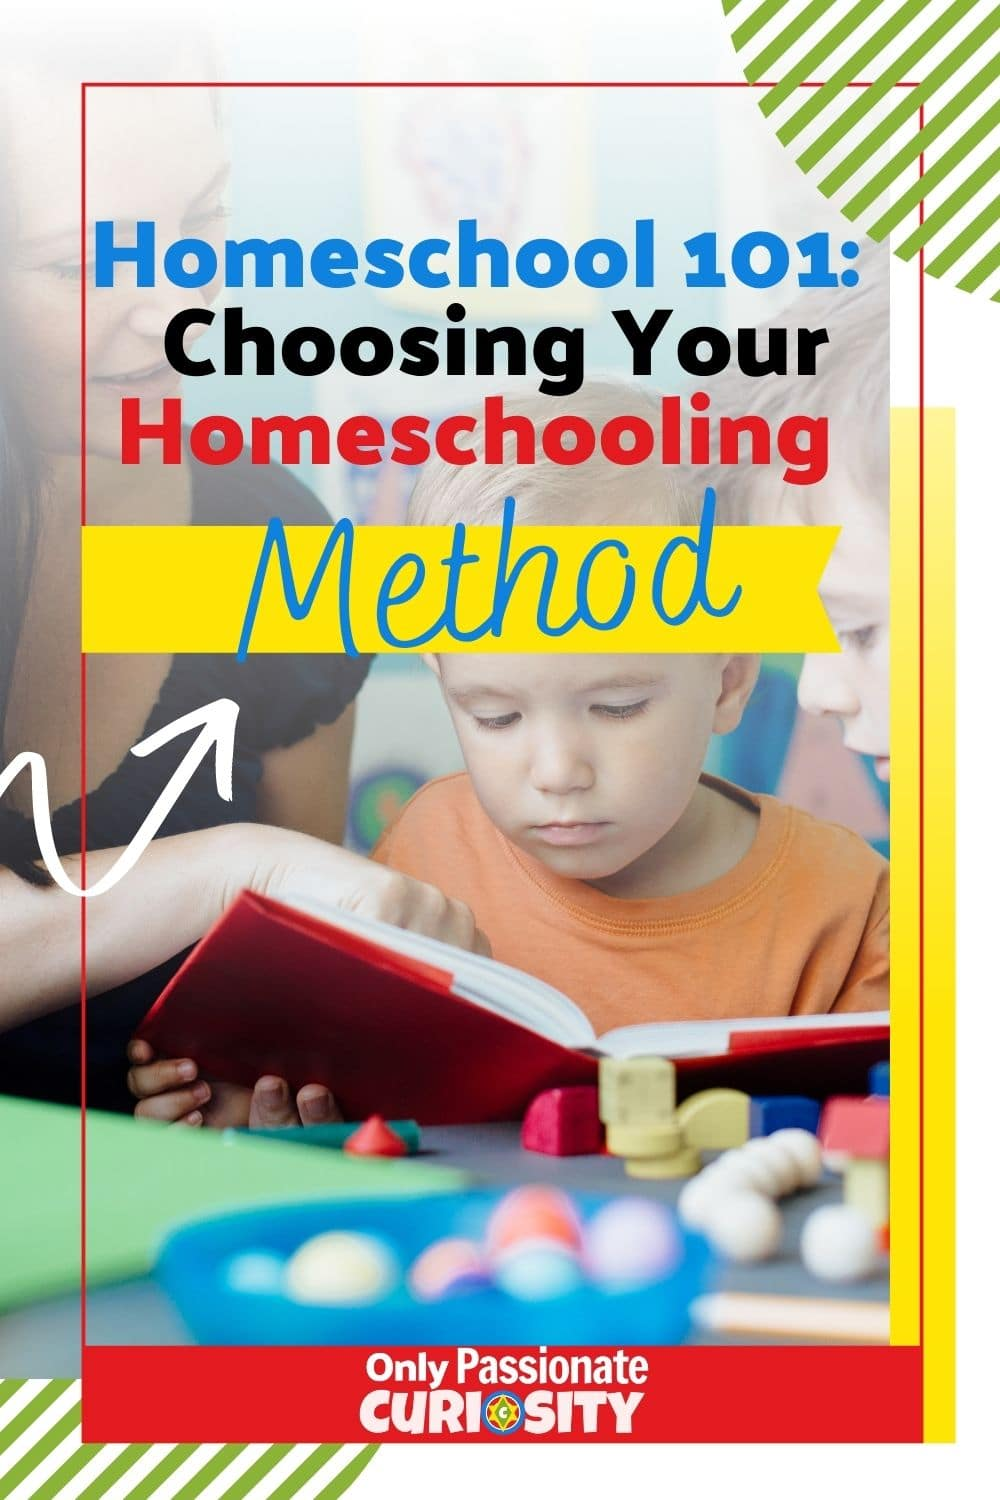 There are lots of homeschooling methods available, and it can be hard to choose! These simple descriptions may help you narrow down your options and choose the one that's right for your family.